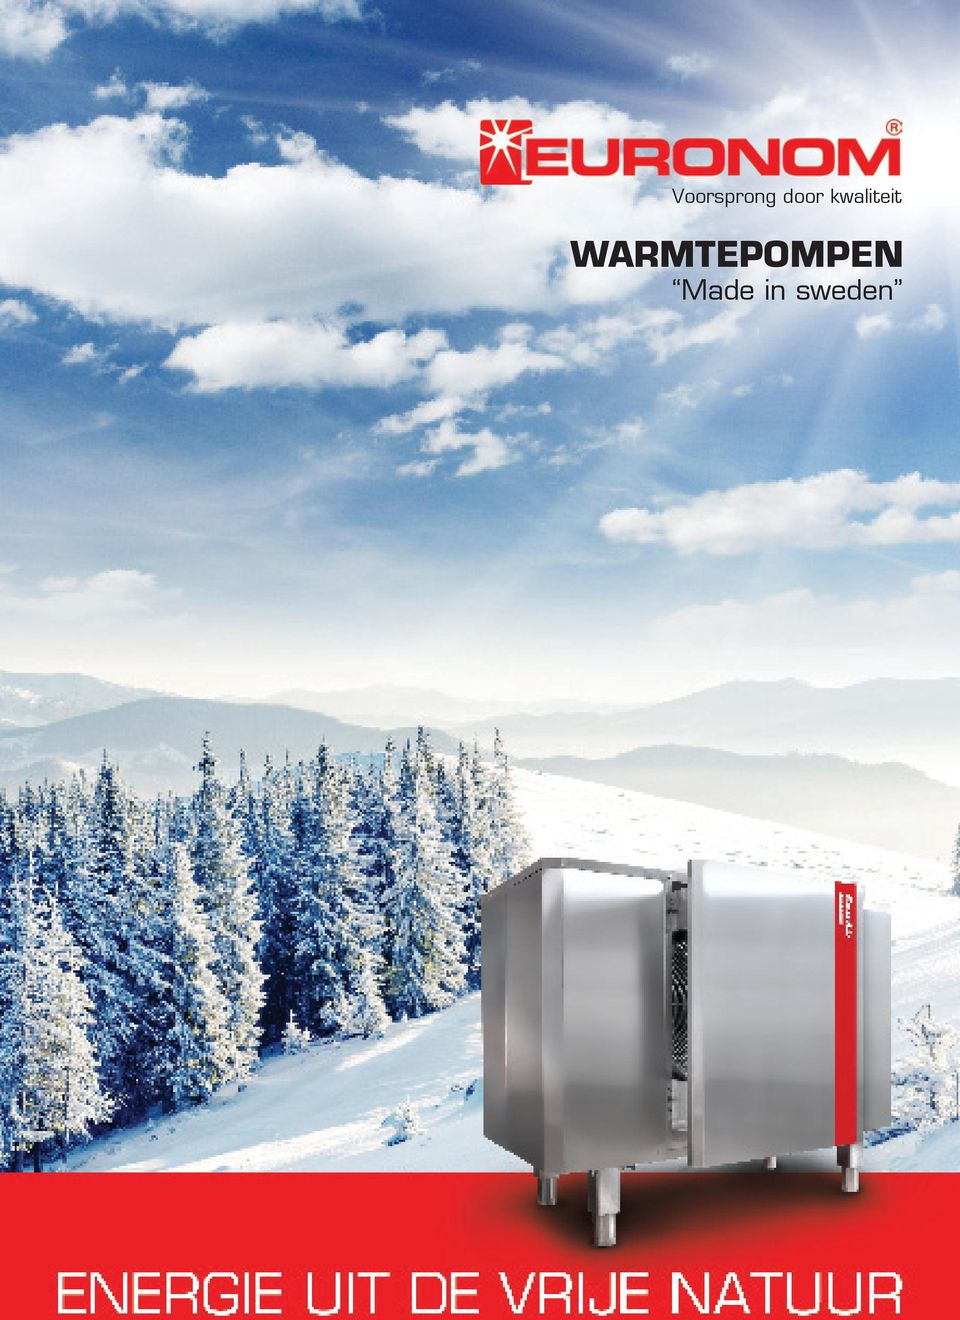 WARMTEPOMPEN Made in